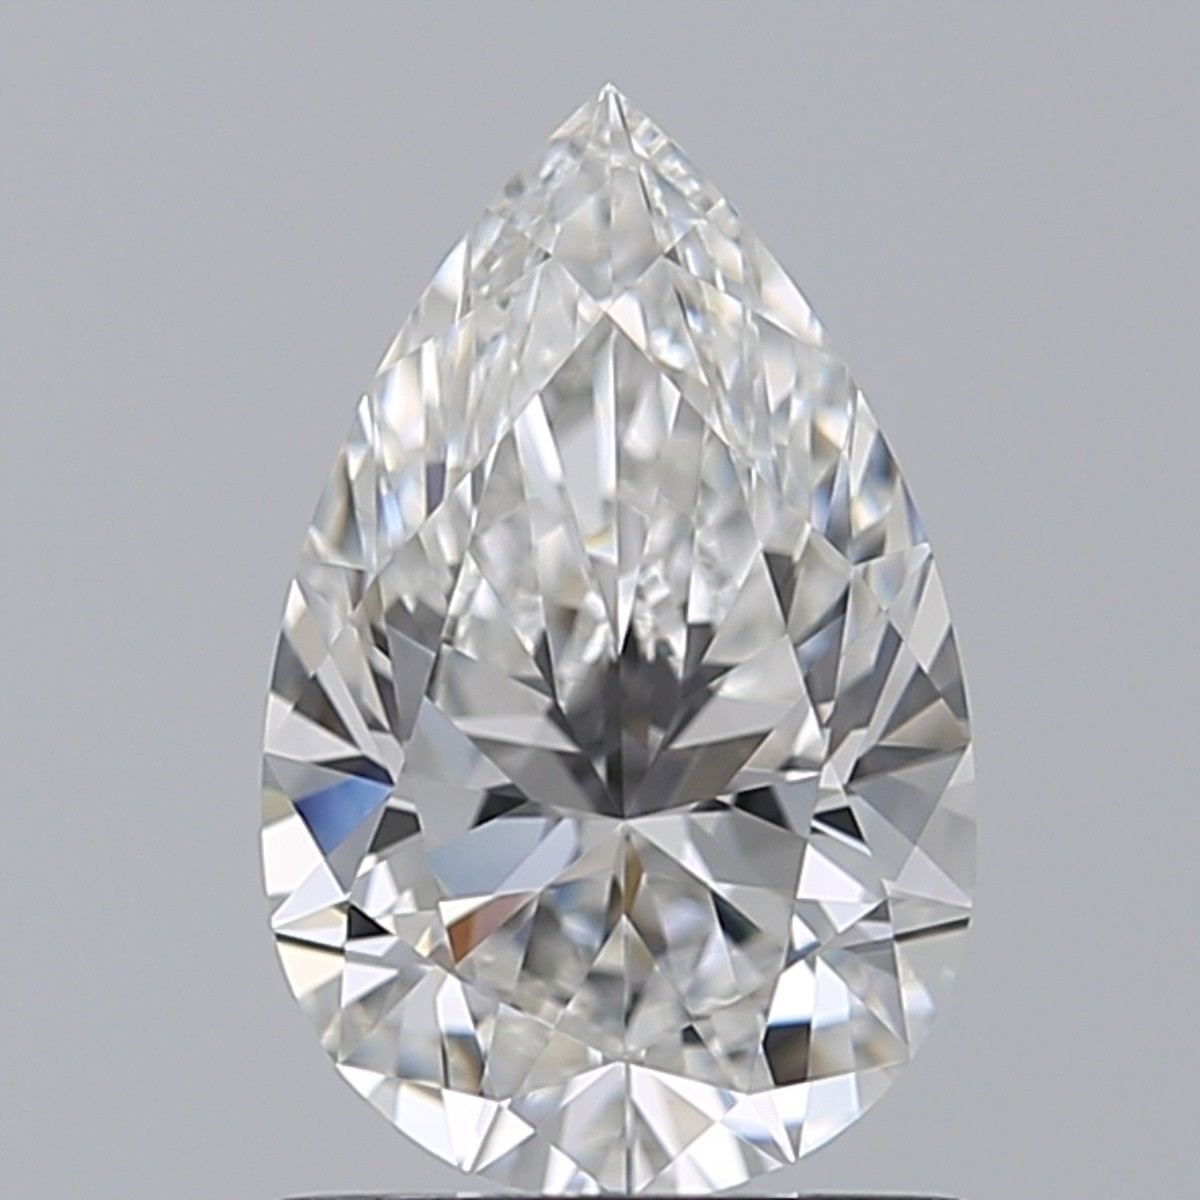 1.12 Carat Pear Diamond (F/VVS1)